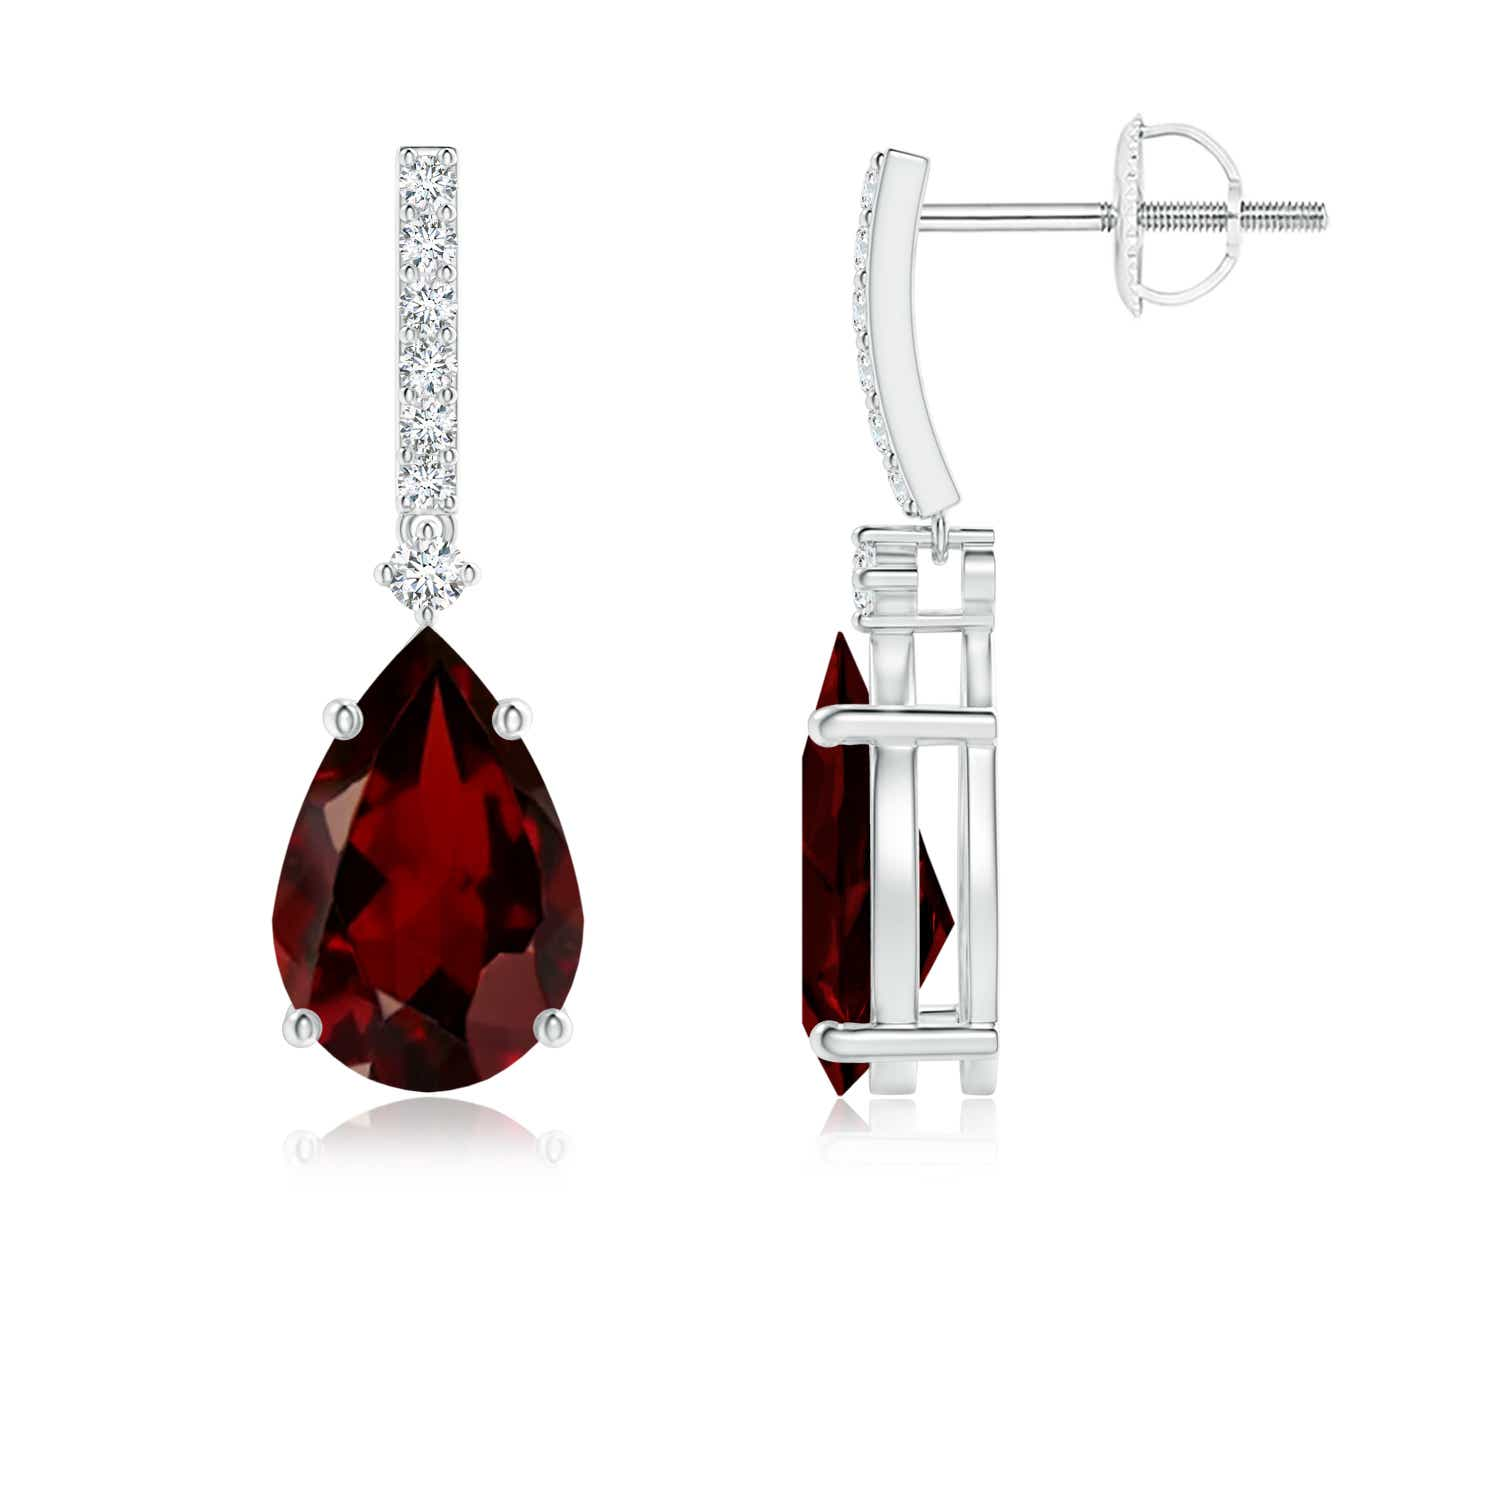 Solitaire Pear Shaped Garnet Drop Earrings with Diamonds - Angara.com